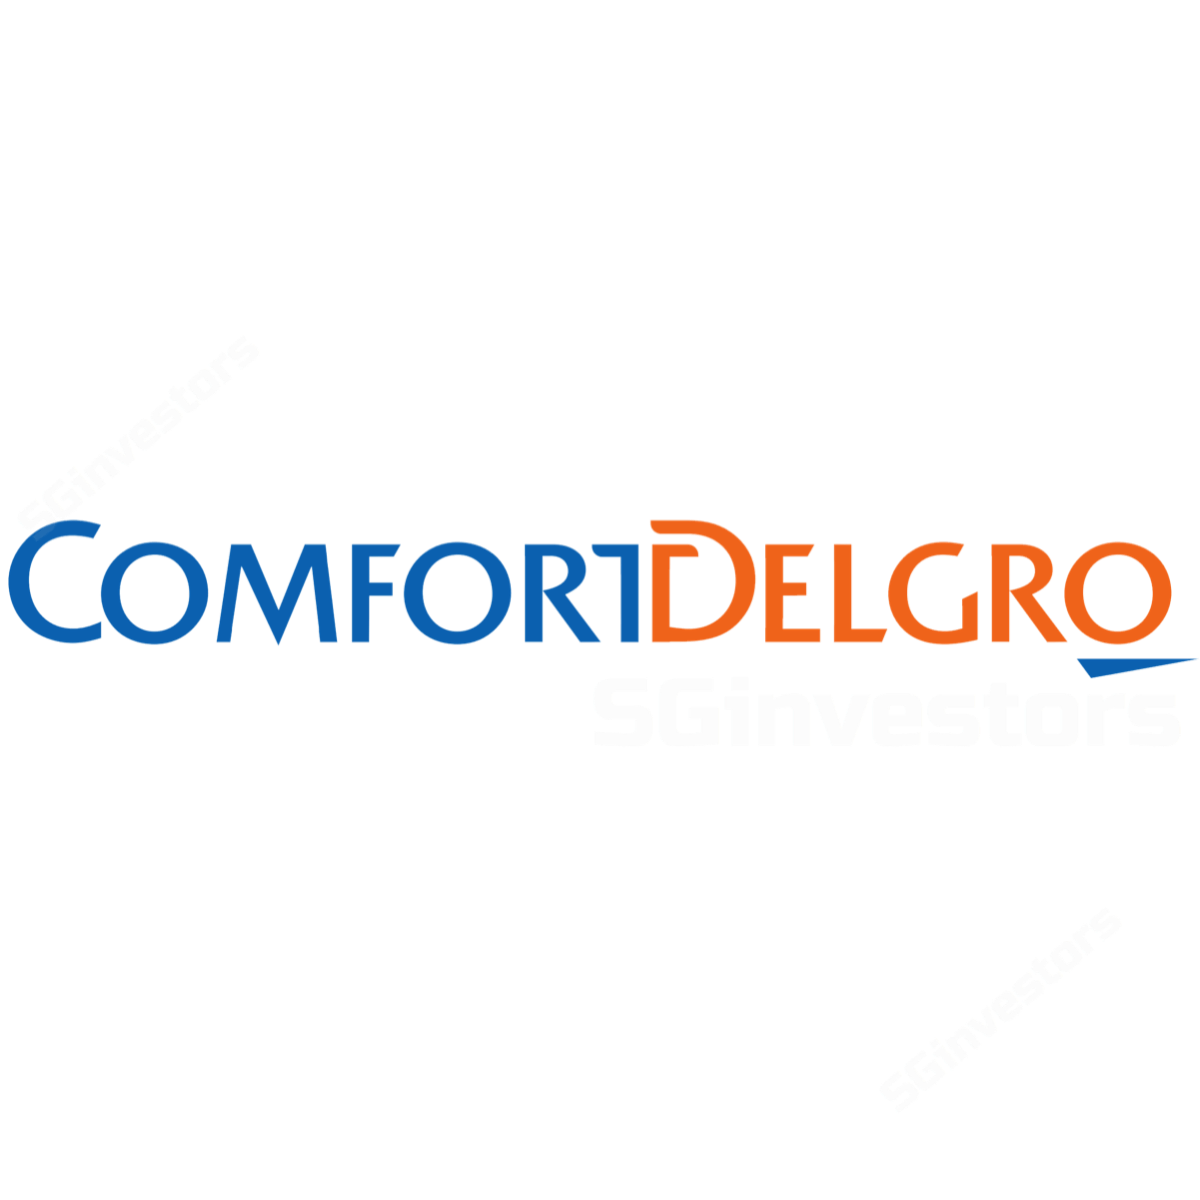 ComfortDelGro - DBS Vickers 2018-07-04: Opportunity To Board